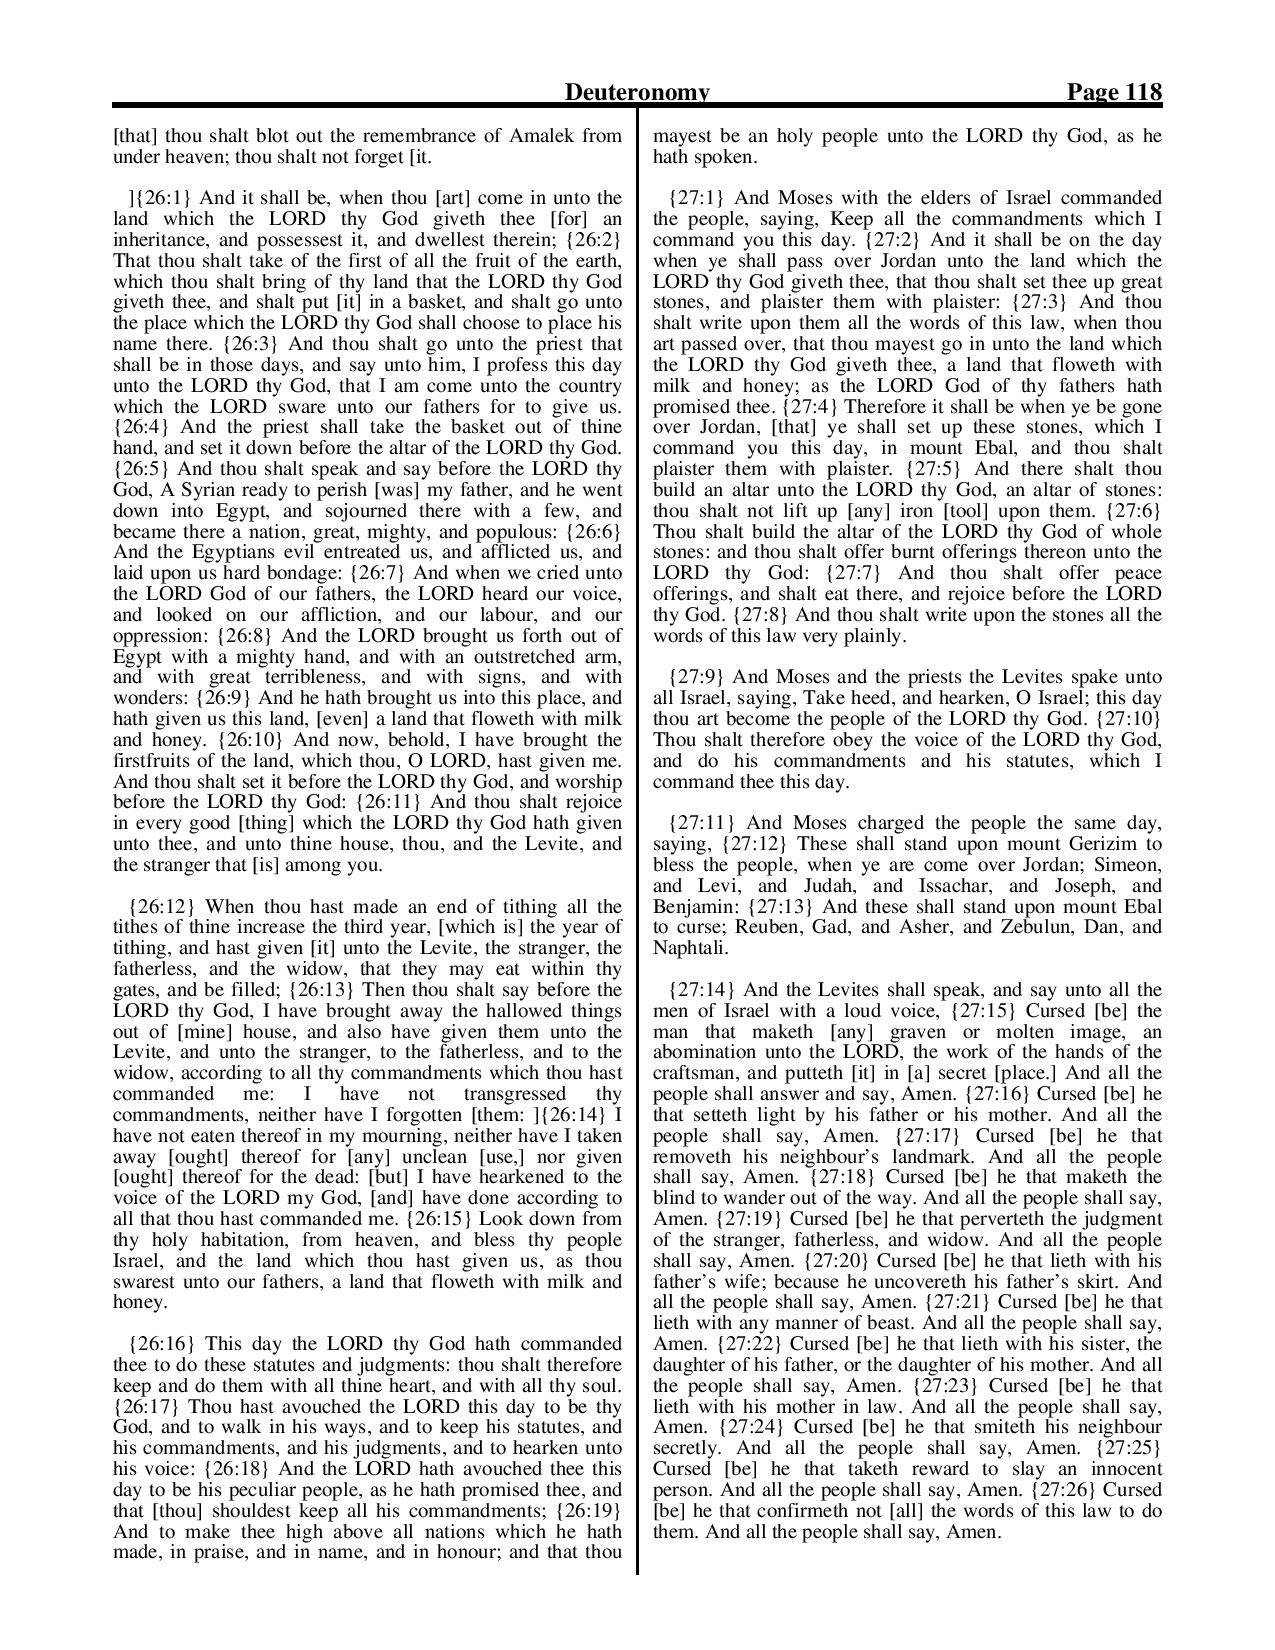 King-James-Bible-KJV-Bible-PDF-page-139